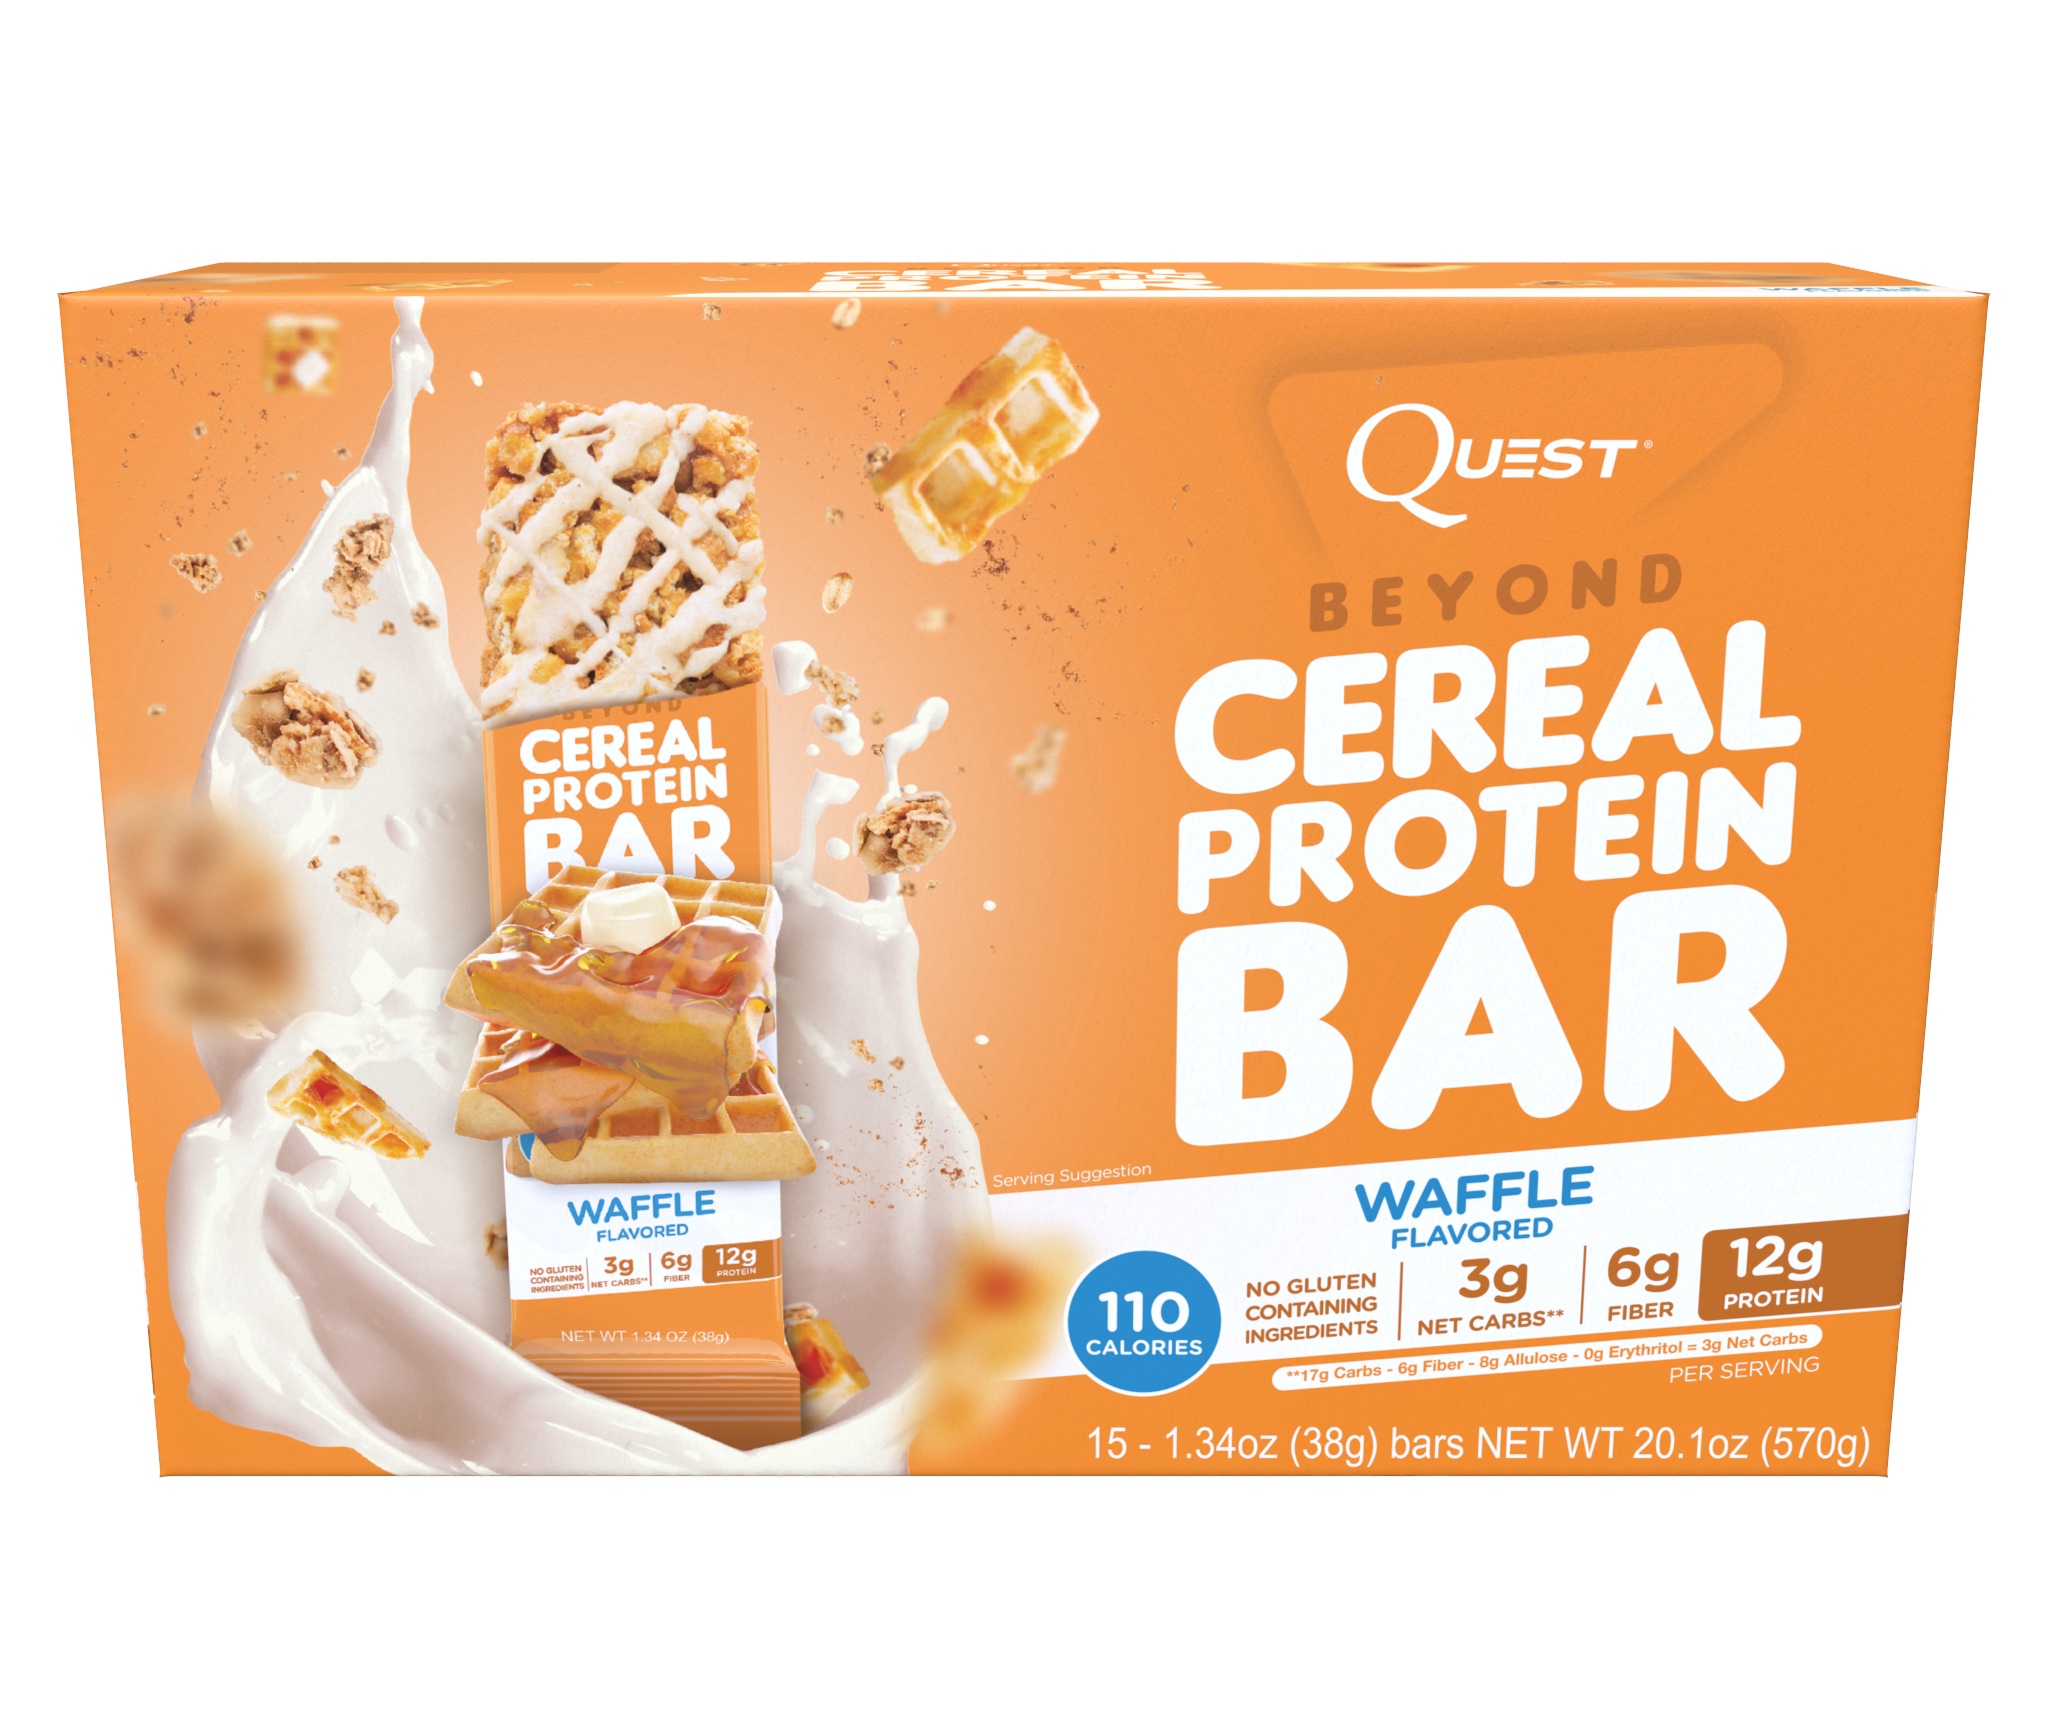 Quest Beyond Cereal Bars: New Bars With A New Sweetener